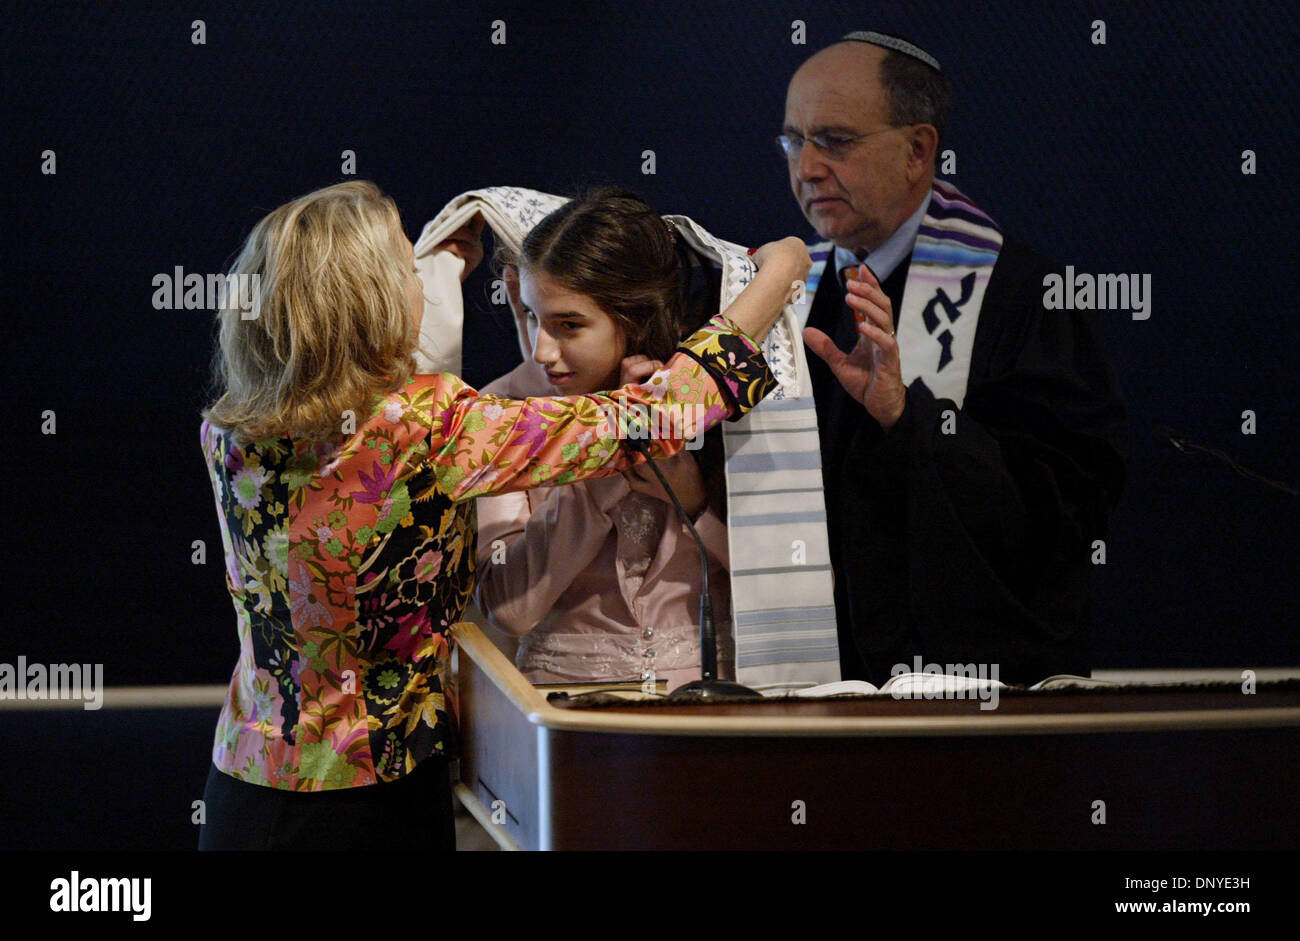 Jan 28, 2006; West Palm Beach, FL, USA; Aunt, Suzanne Douglas Harris, left, places a tallit, or prayer shawl around Bat Mitzvah, Hillary Hass with the help of Rabbi Howard Shapiro before Hillary reads the Torah during the morning Shabbat service on January 28, 2006.   Mandatory Credit: Photo by J. Gwendolynne Berry/Palm Beach Post/ZUMA Press. (©) Copyright 2006 by Palm Beach Post - Stock Image